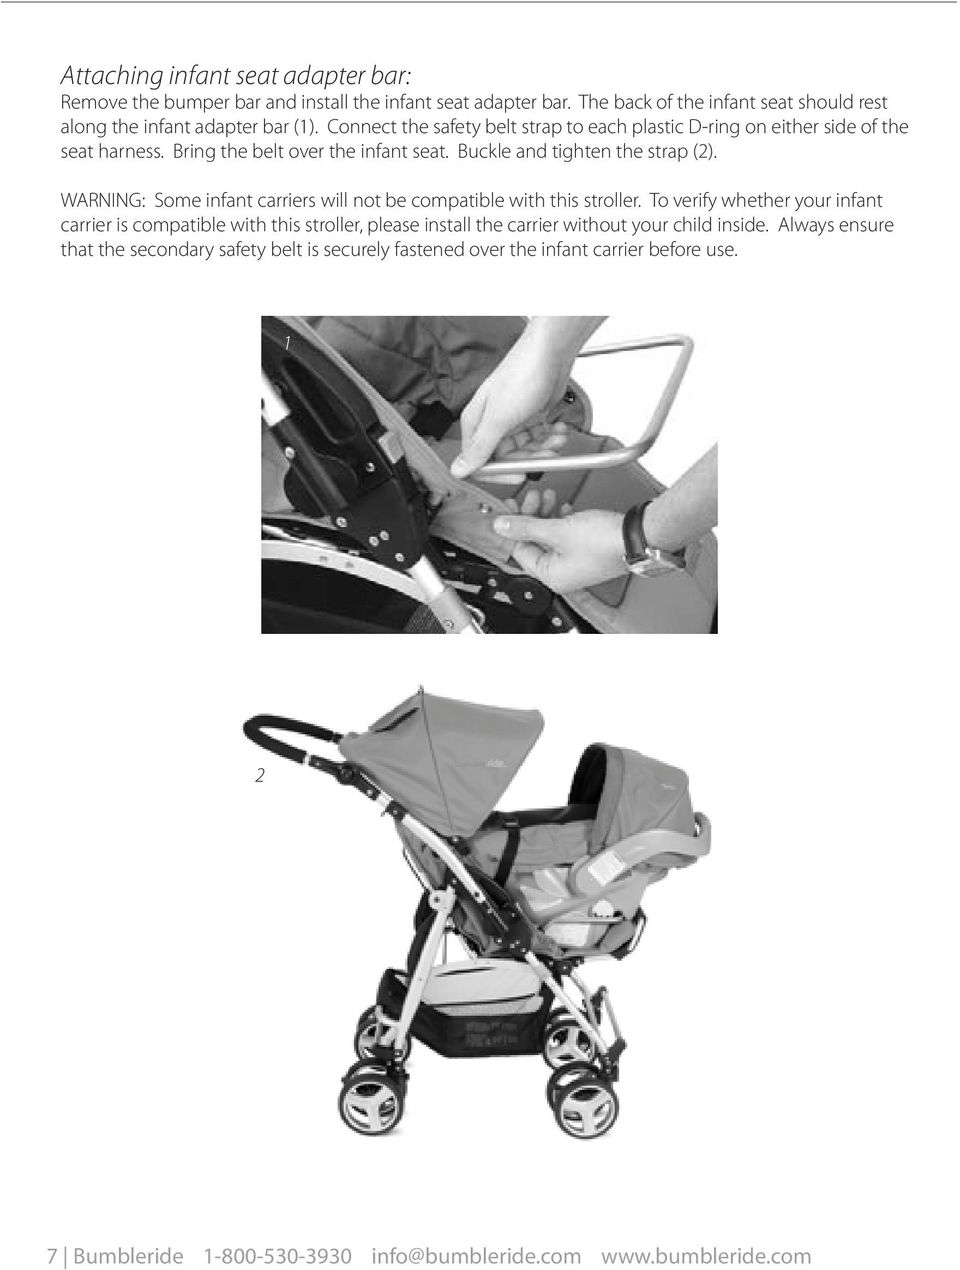 WARNING: Some infant carriers will not be compatible with this stroller.